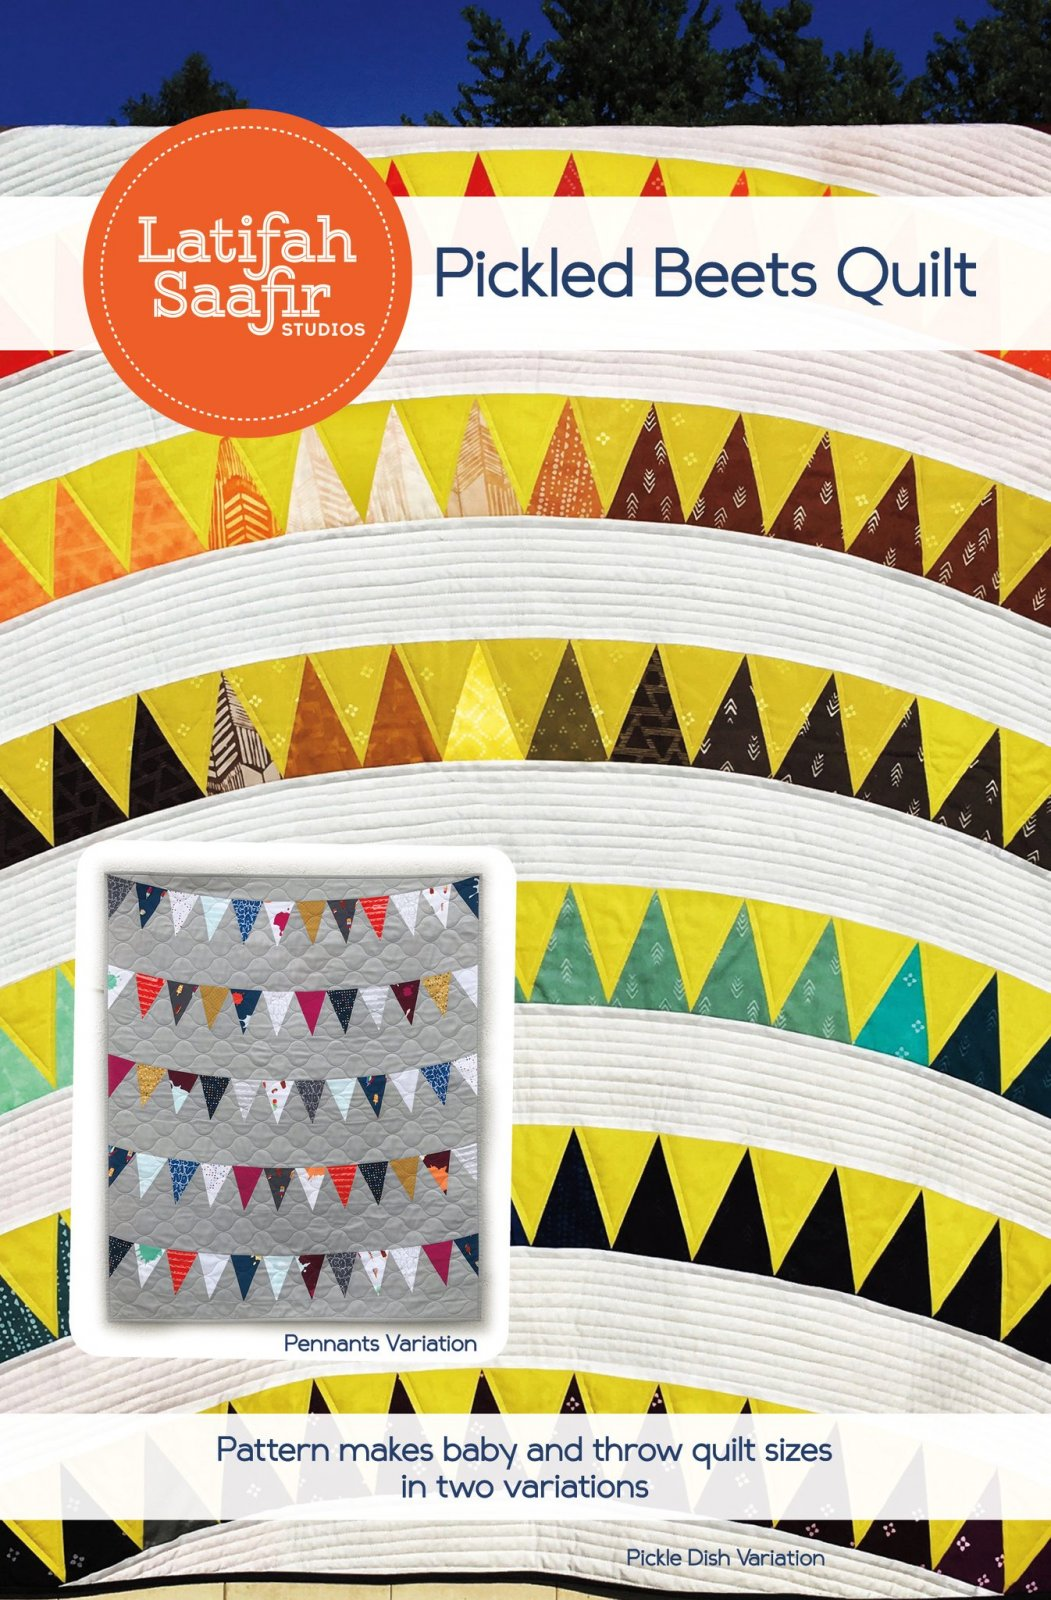 Pickled Beets Quilt Pattern